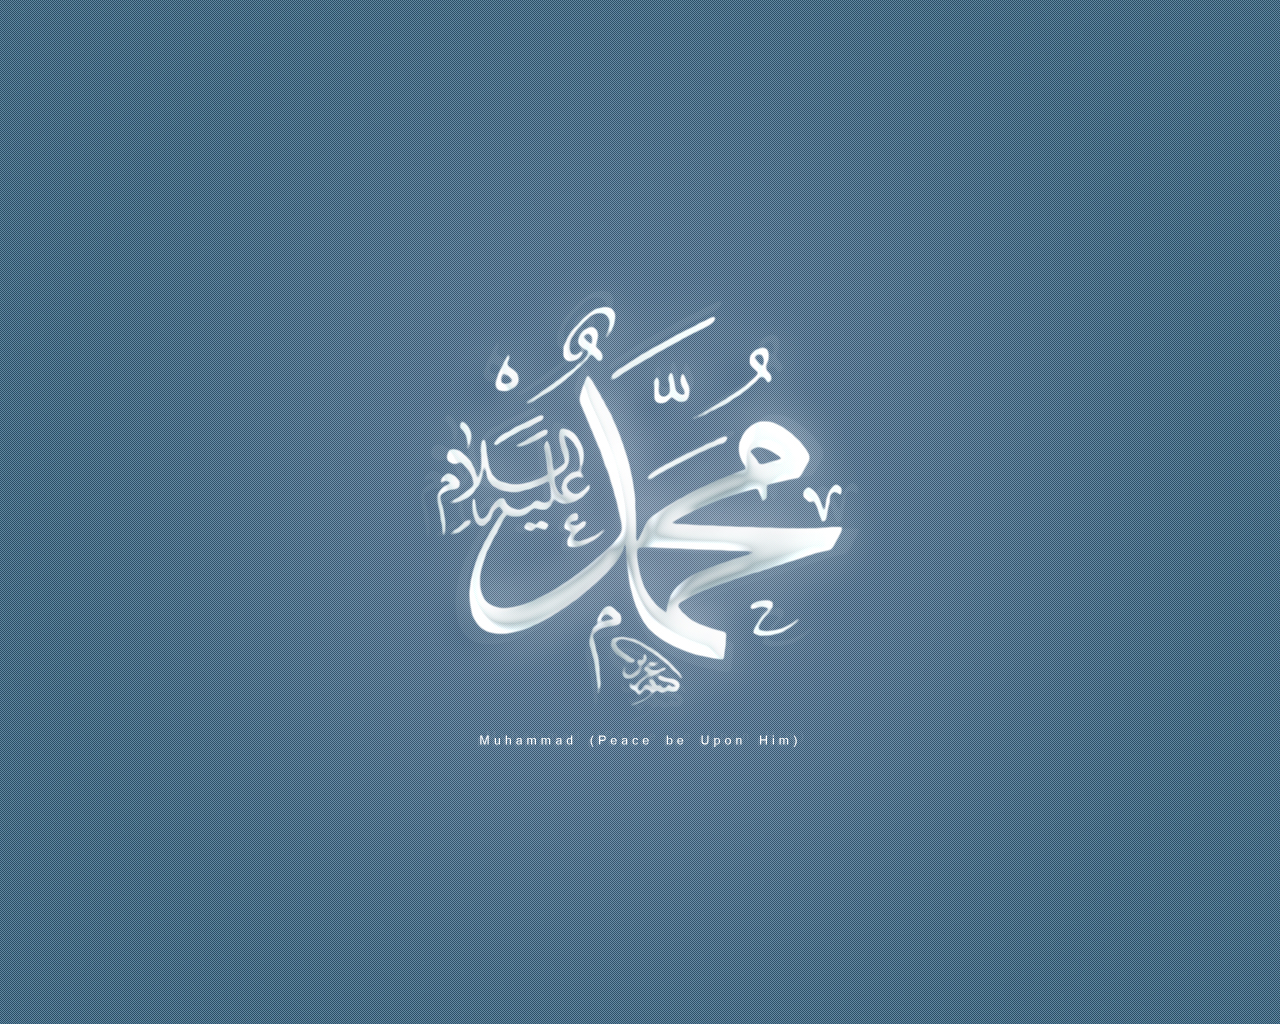 download by muqthar mohammad labels wallpapers allah desktop 1280x1024